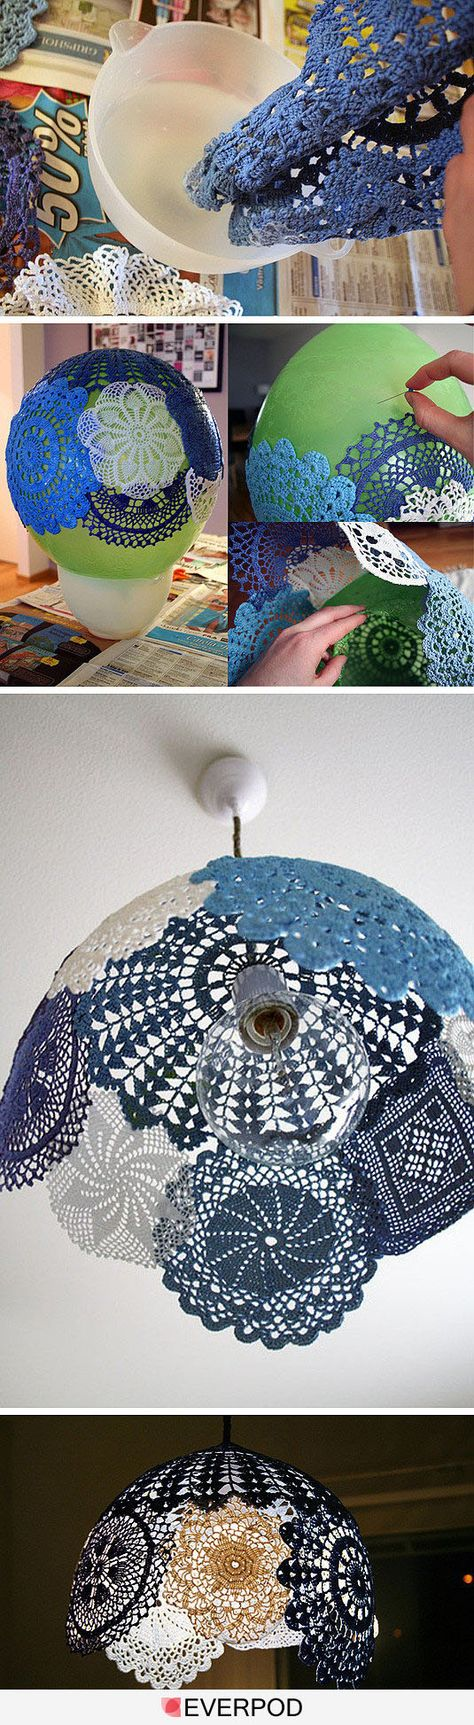 Best 25 doily lamp ideas on pinterest diy lace light globe diy best 25 doily lamp ideas on pinterest diy lace light globe diy lace light shade and diy lace lamp shade decor it yourself arubaitofo Image collections